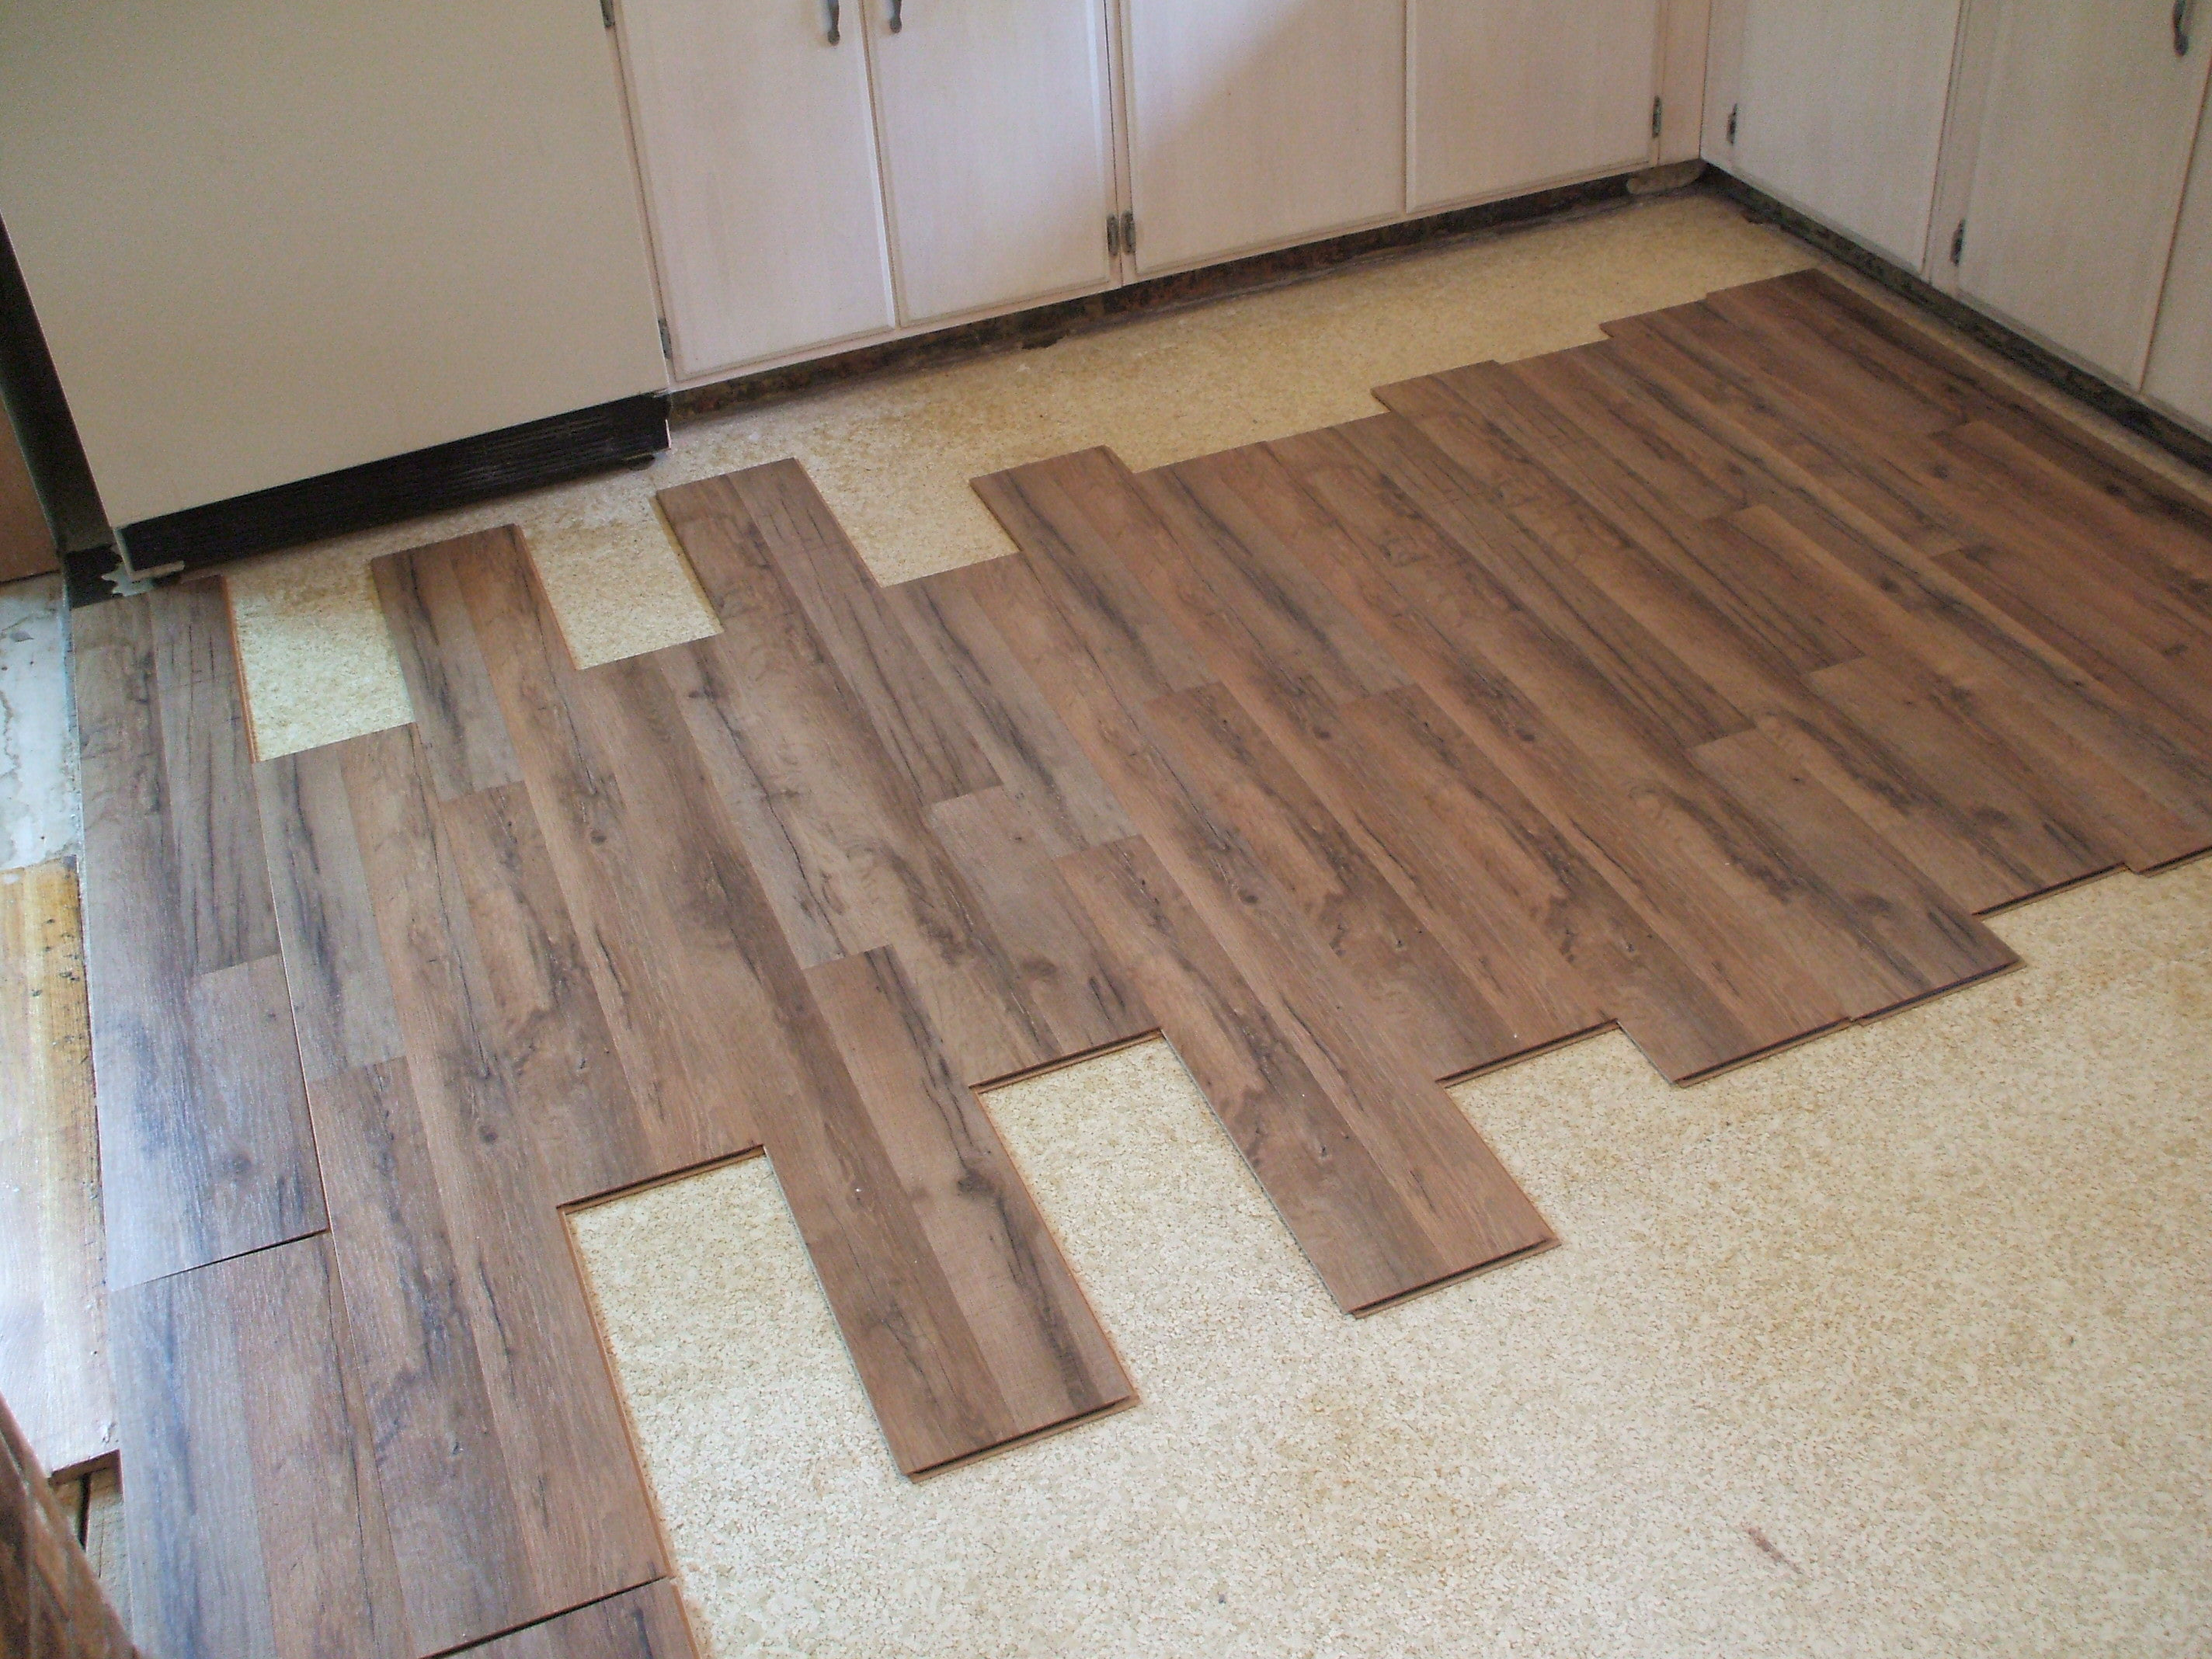 Fabulous Flooring Options For Your Rental Home Which Is Best Download Free Architecture Designs Sospemadebymaigaardcom